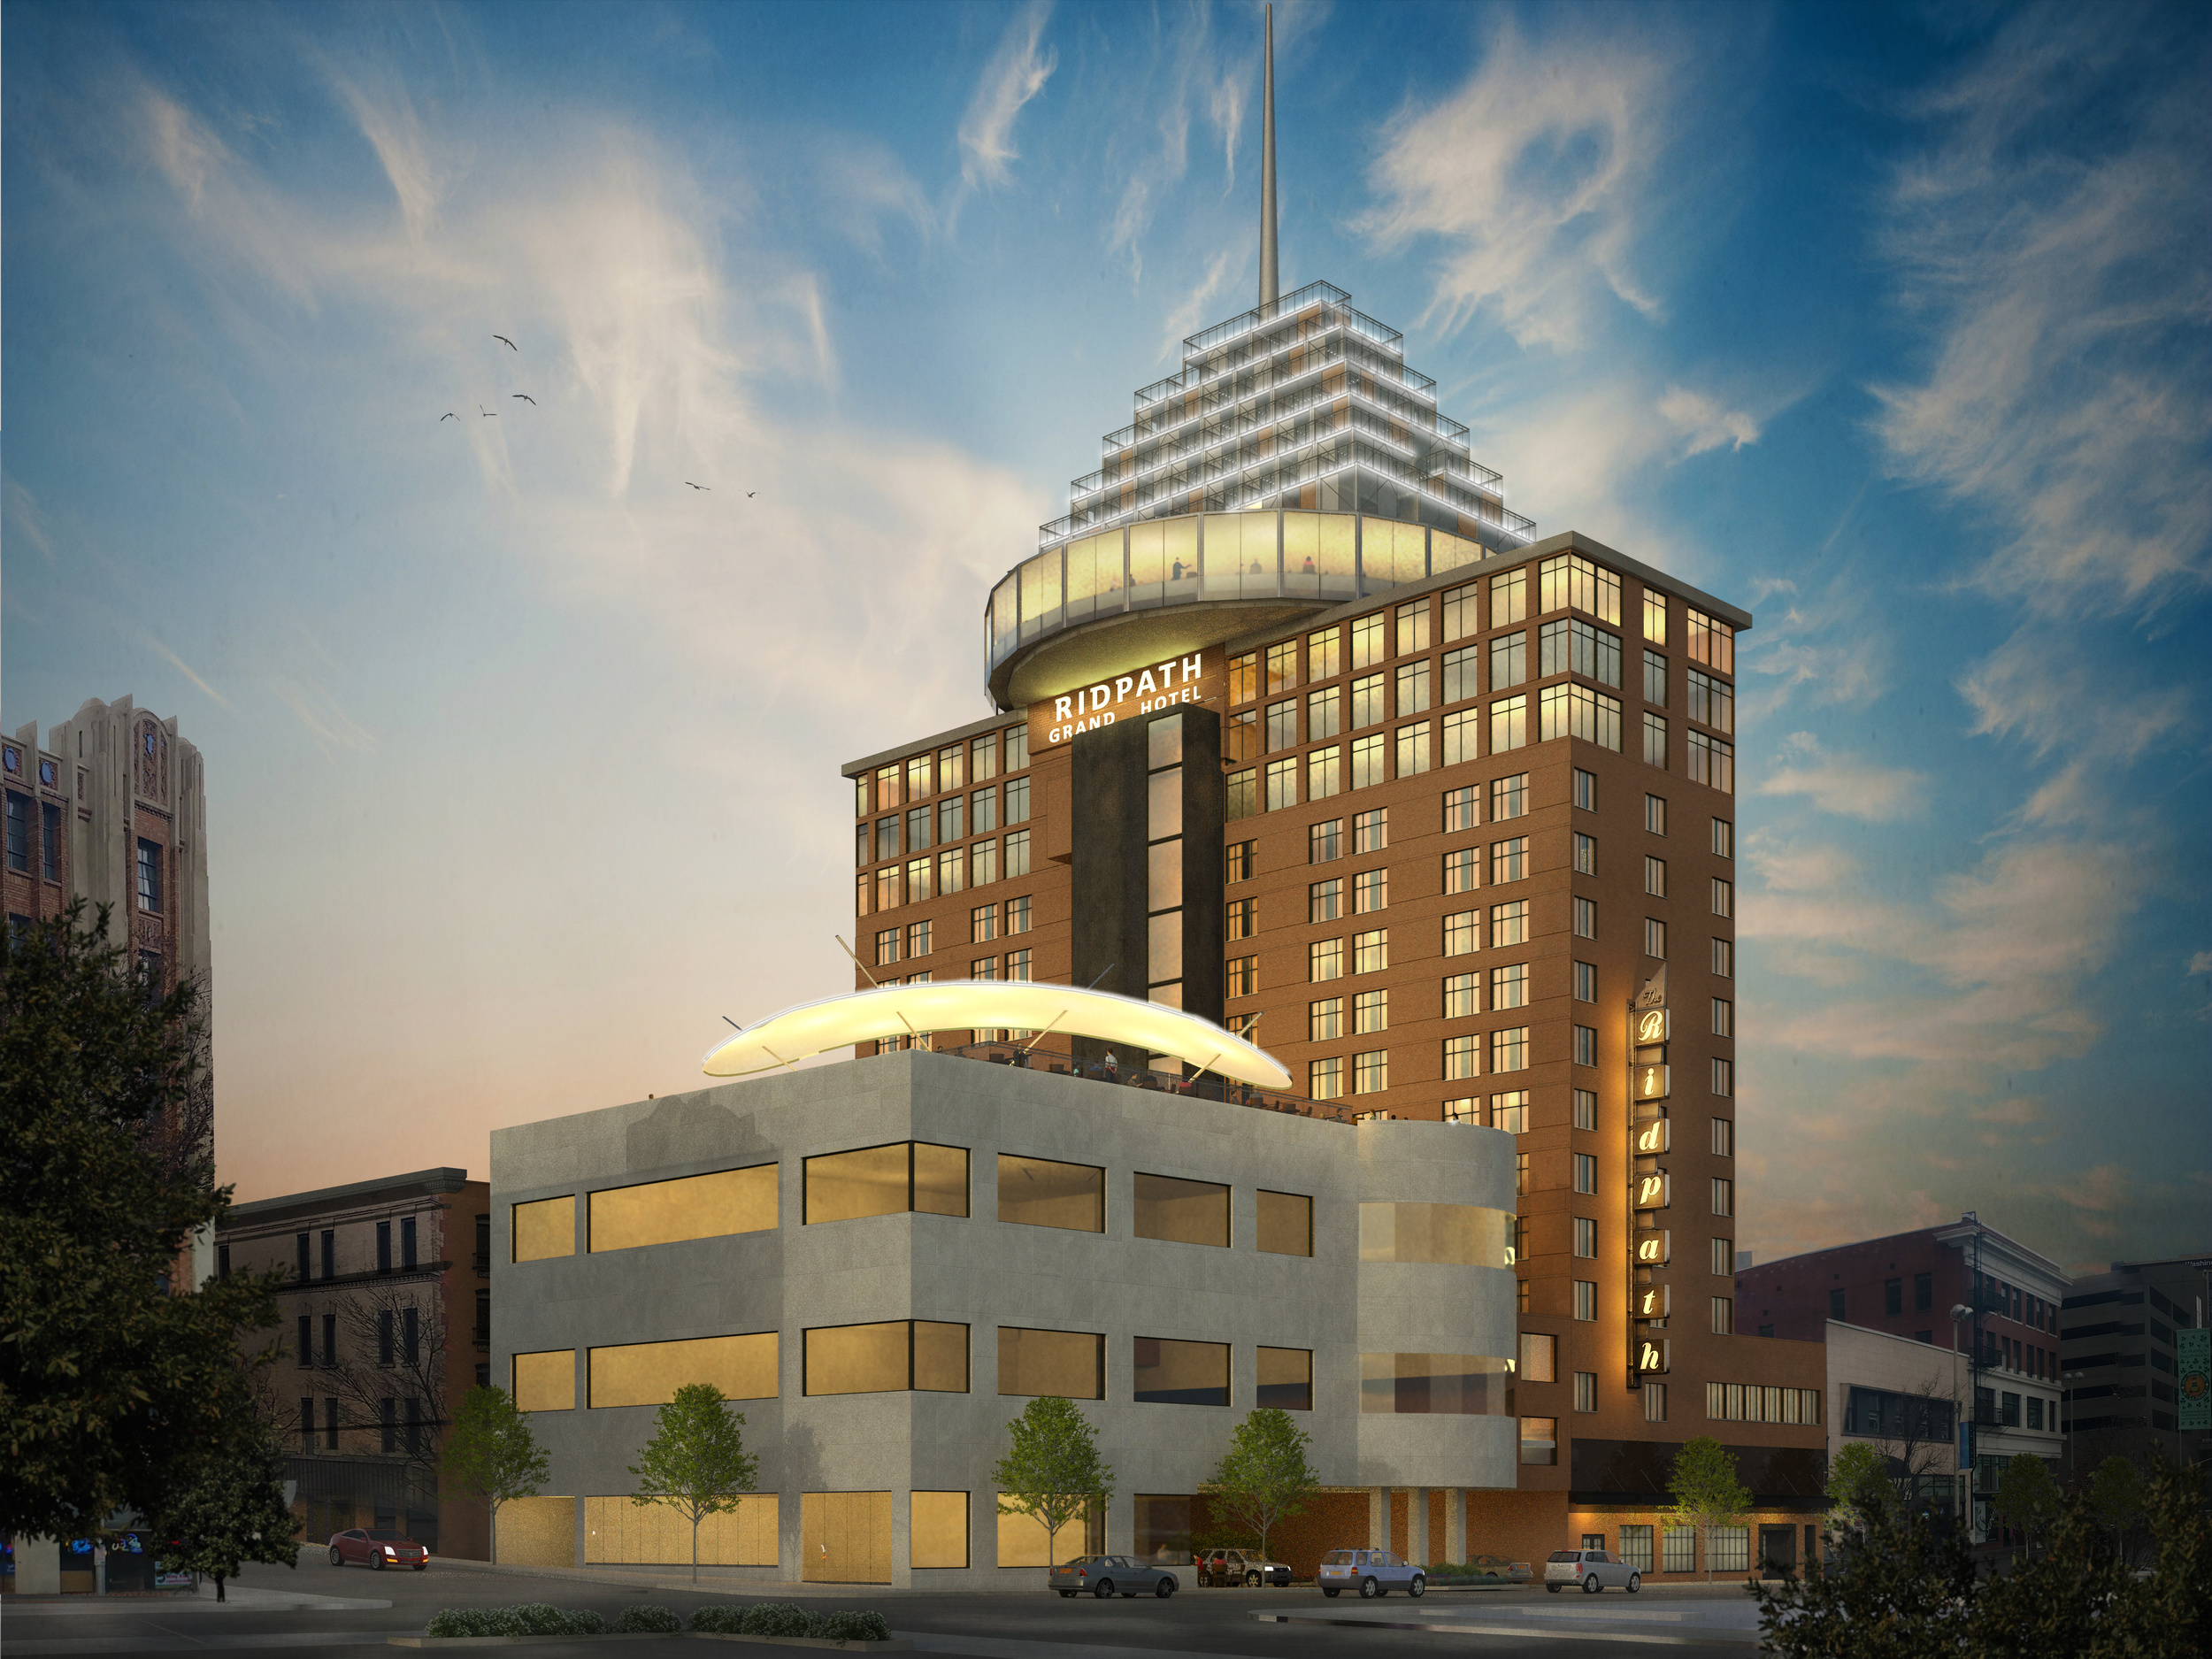 Ridpath Hotel Addition and Remodel